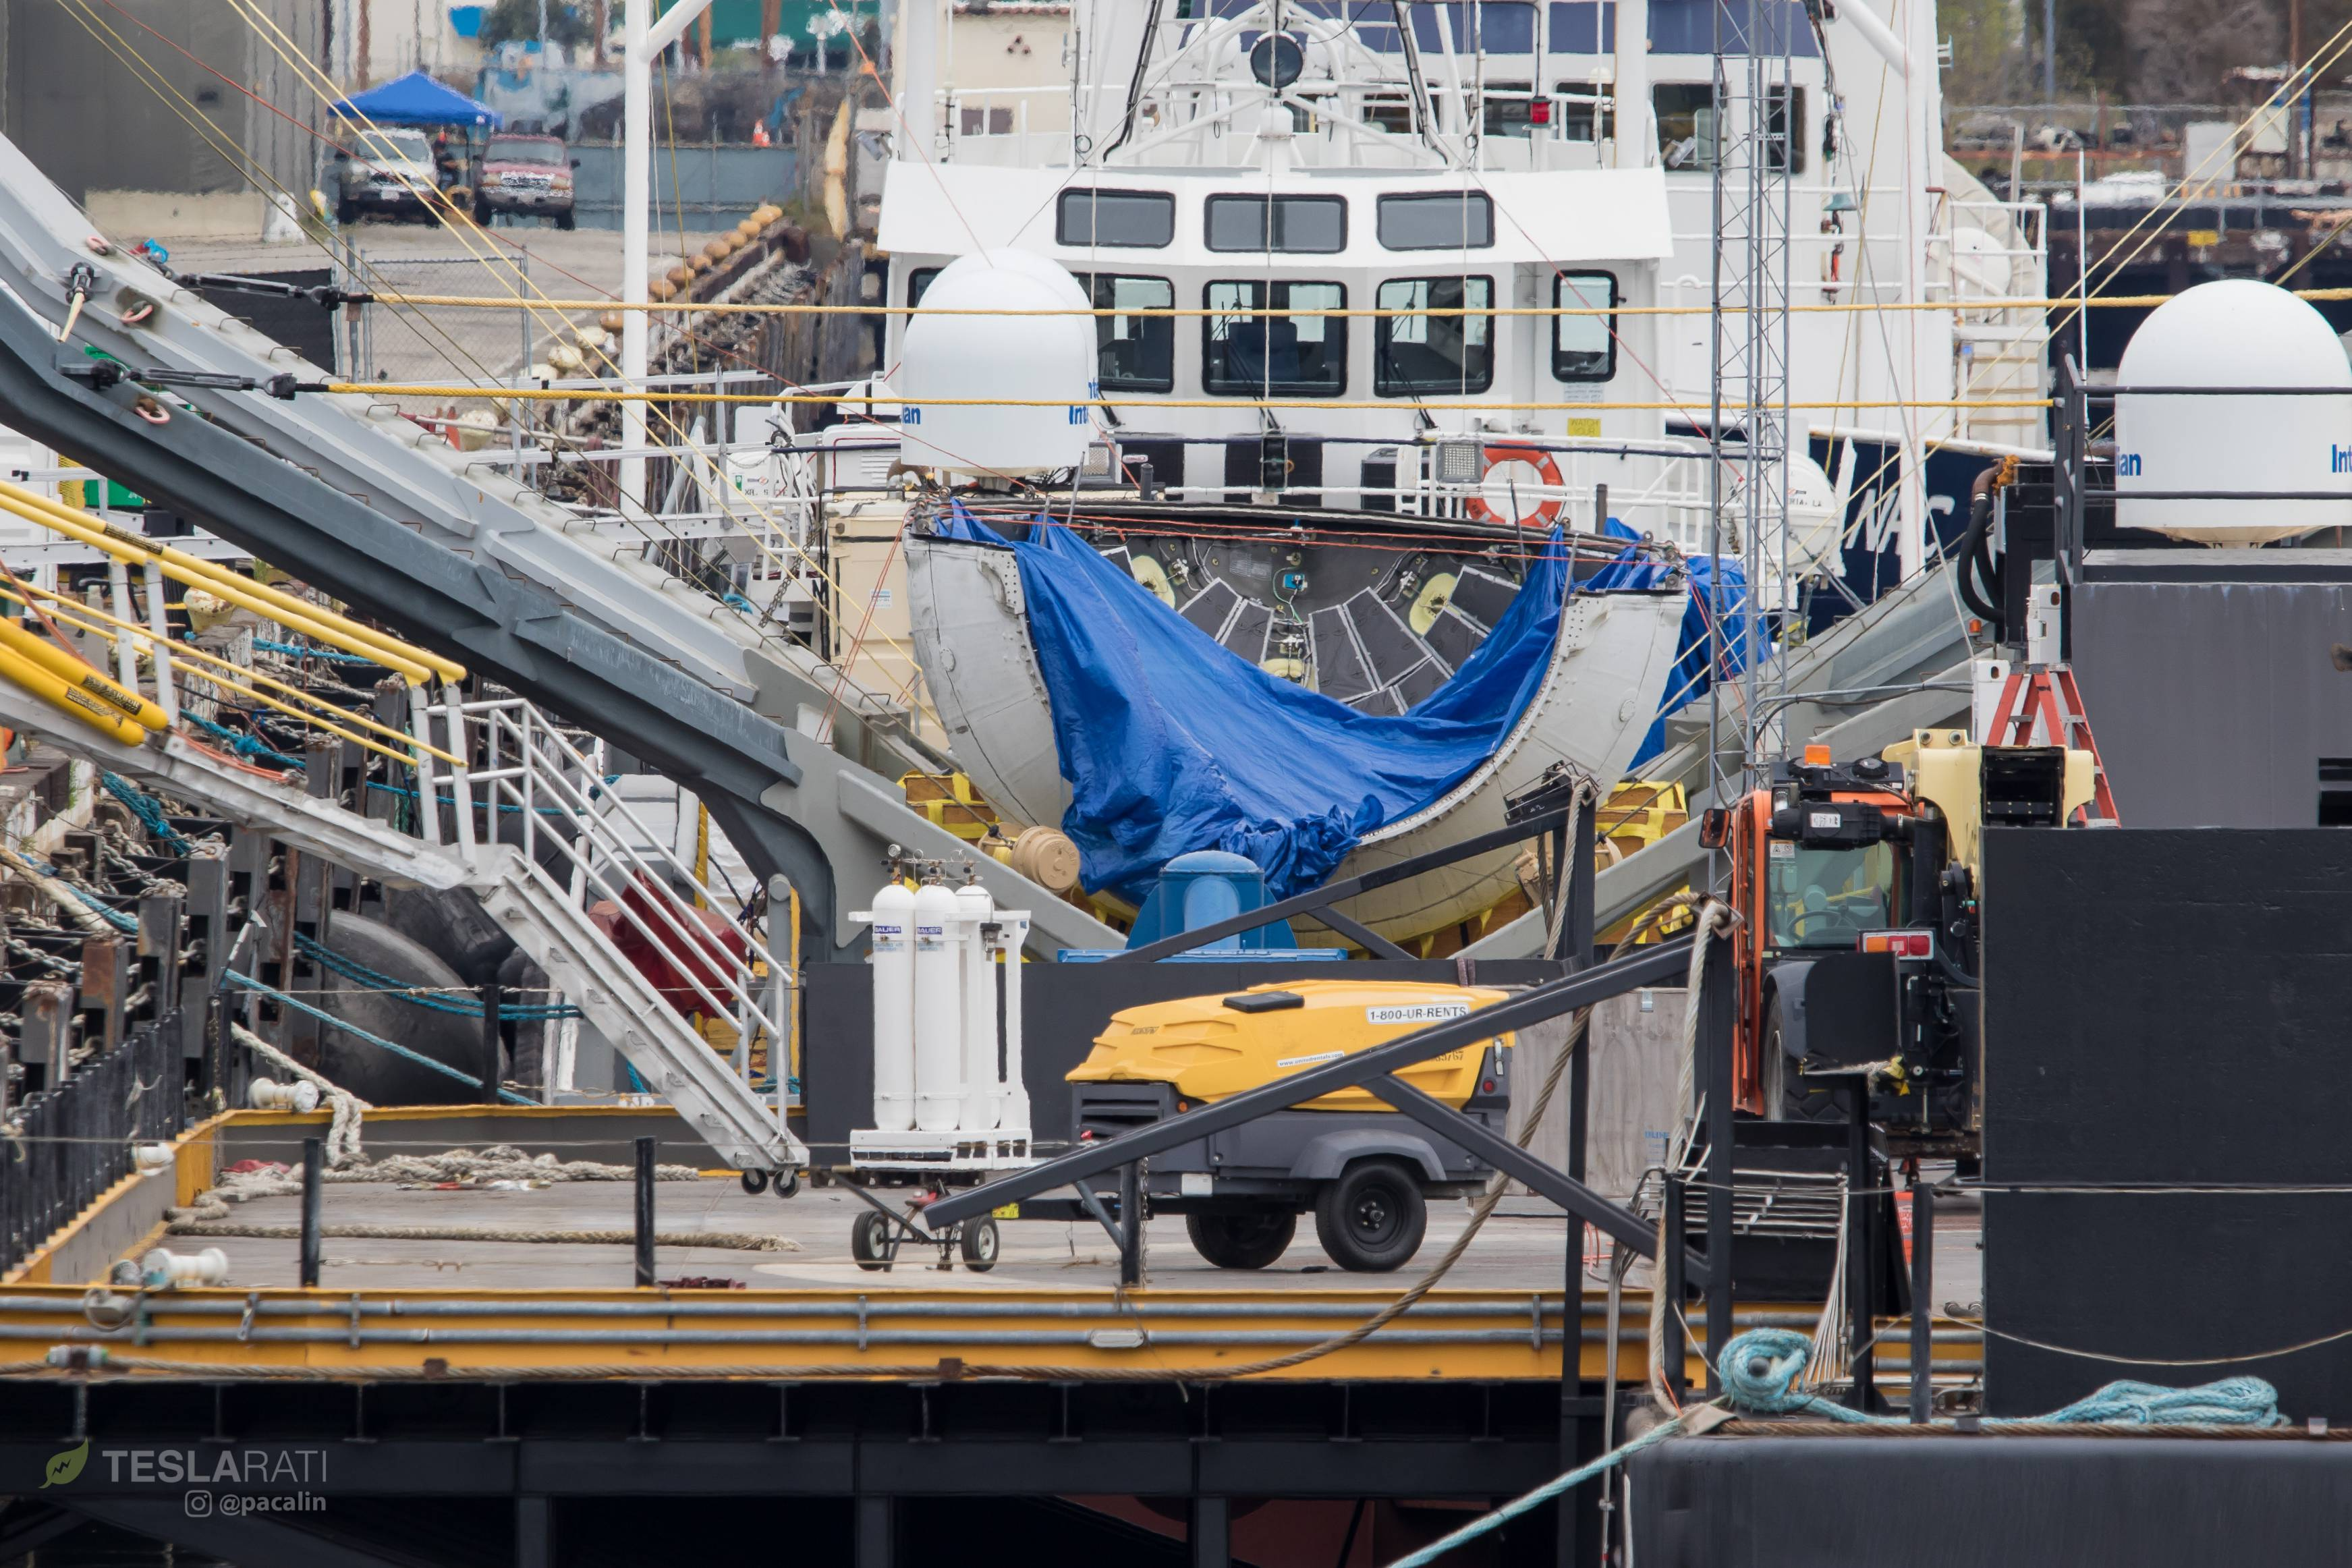 spacex heavy fairing recovery - HD1200×800